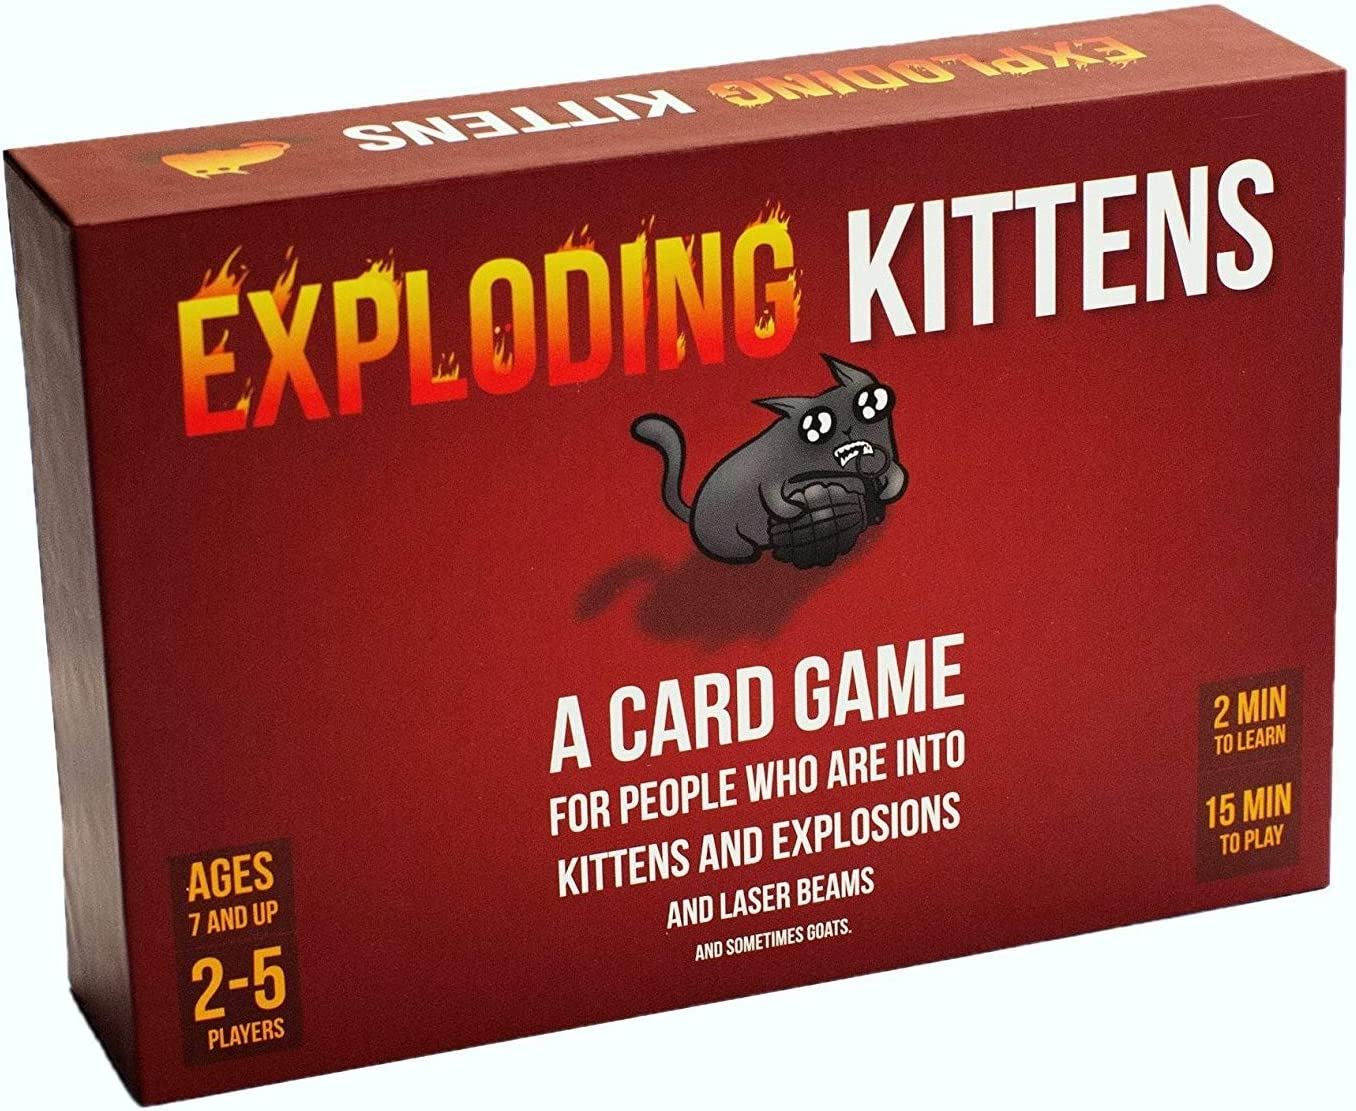 Exploding Kittens | 10 Unexpected Gifts For Brothers That They'll Actually Like